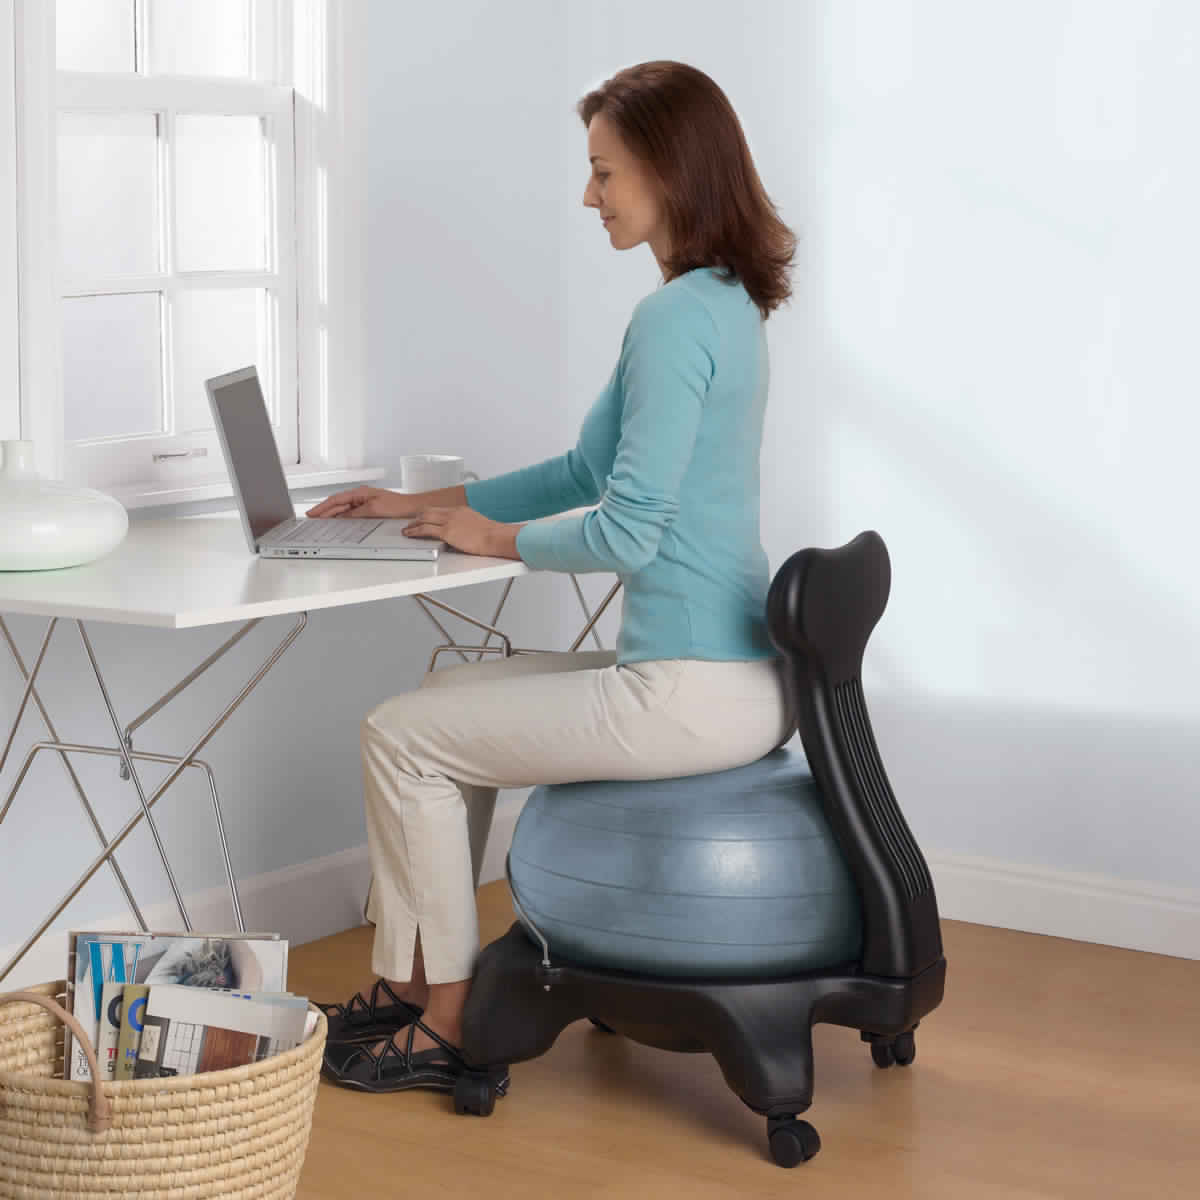 Balance-Ball-Chair-Yoga Benefits of using Yoga Ball Chair for your Home or Office